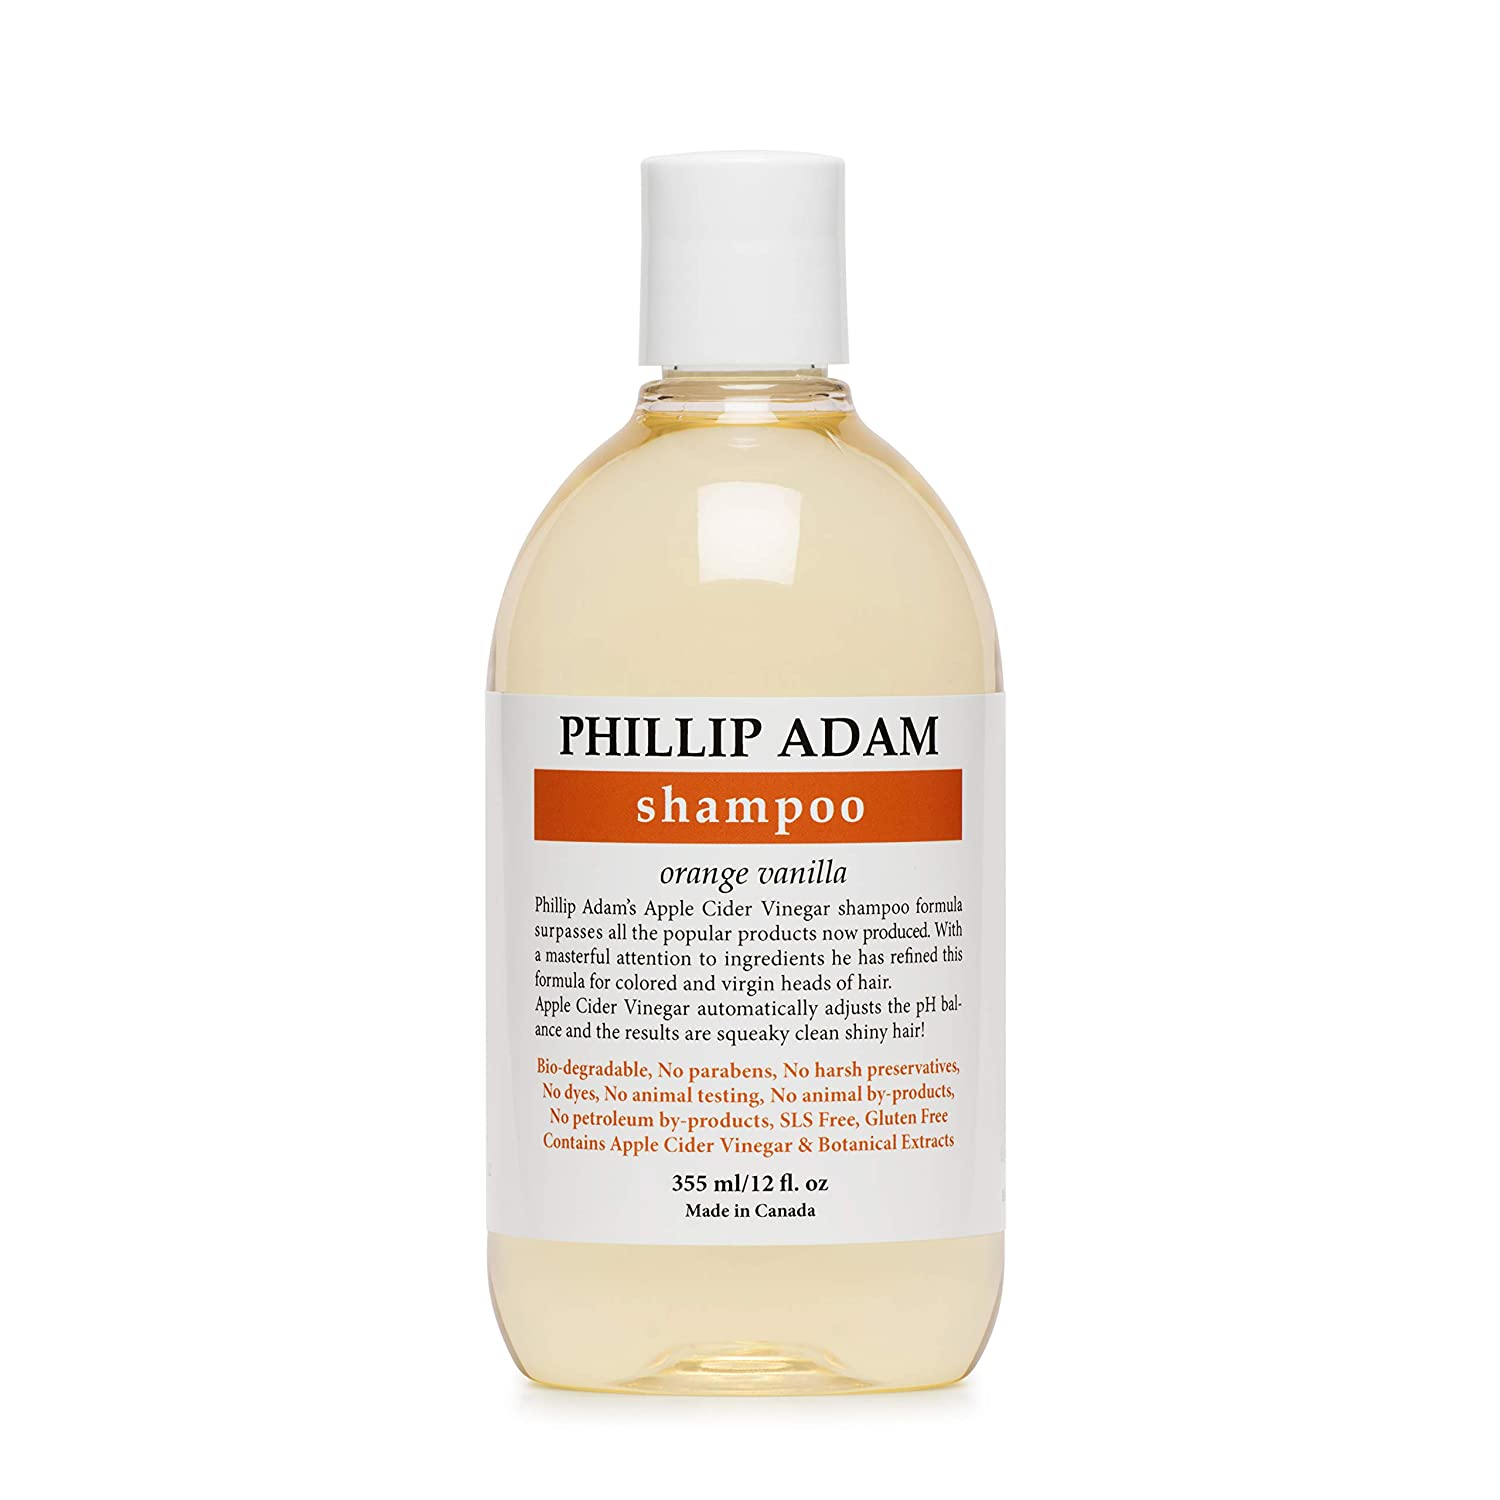 Phillip Adam Orange Vanilla Shampoo for Shiny Hair - Enriched with Apple Cider Vinegar - Sulfate Free - 12 Ounce